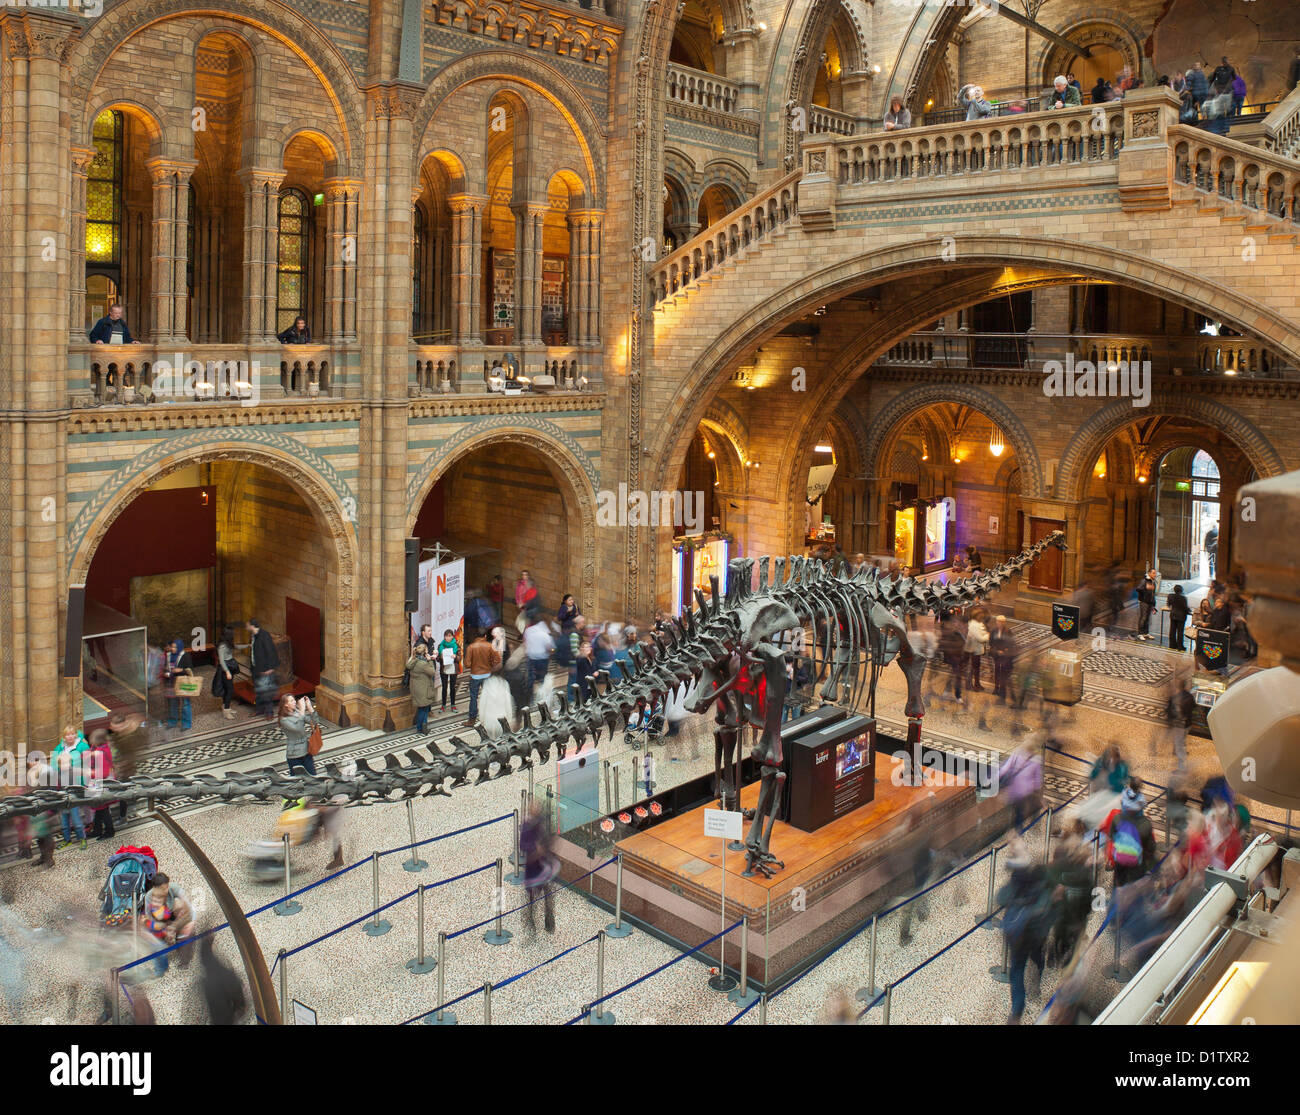 The Natural History Museum, London. - Stock Image